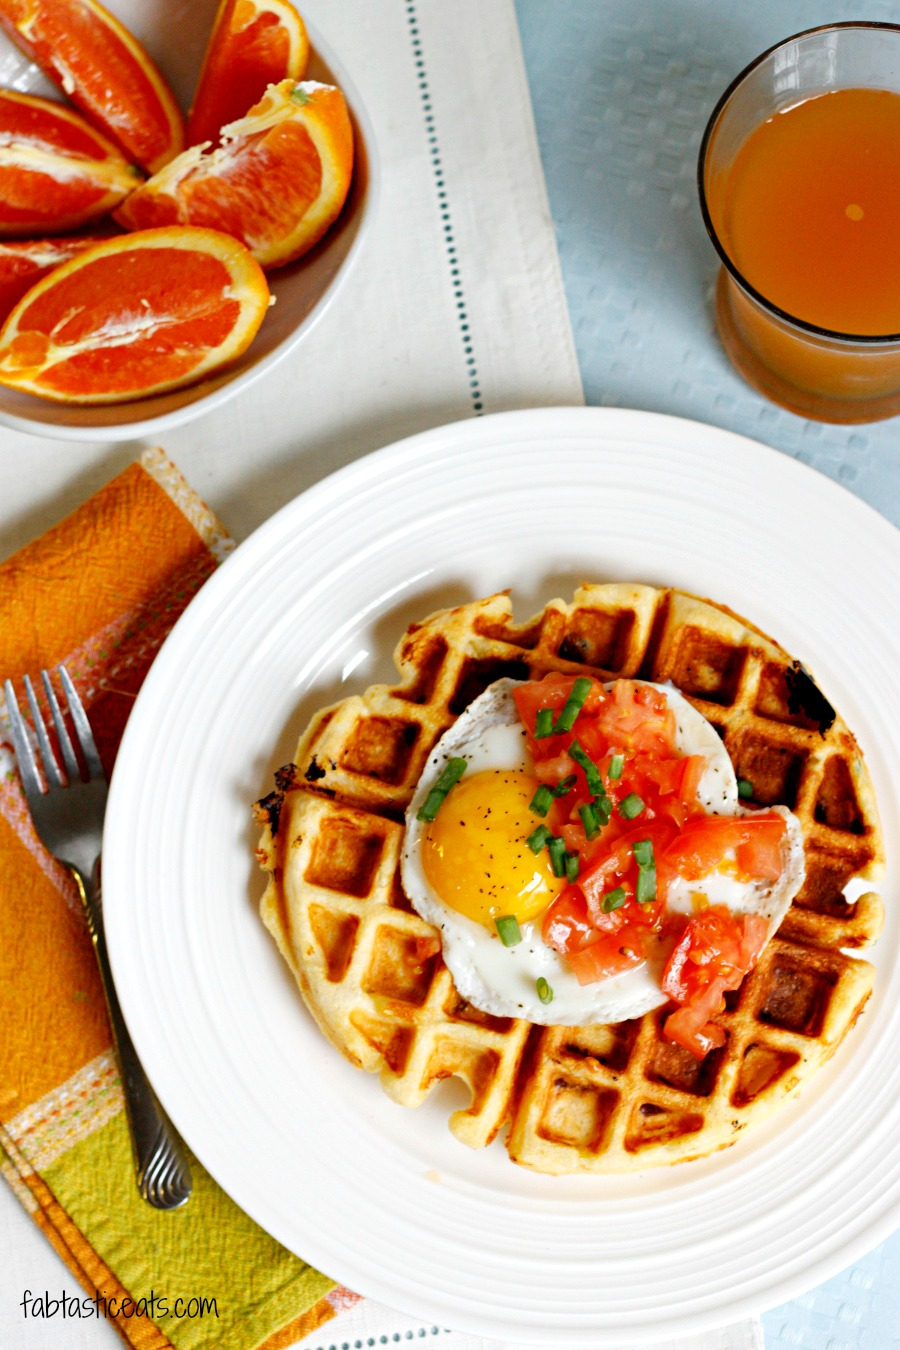 Cheddar Cornmeal Waffles with Eggs